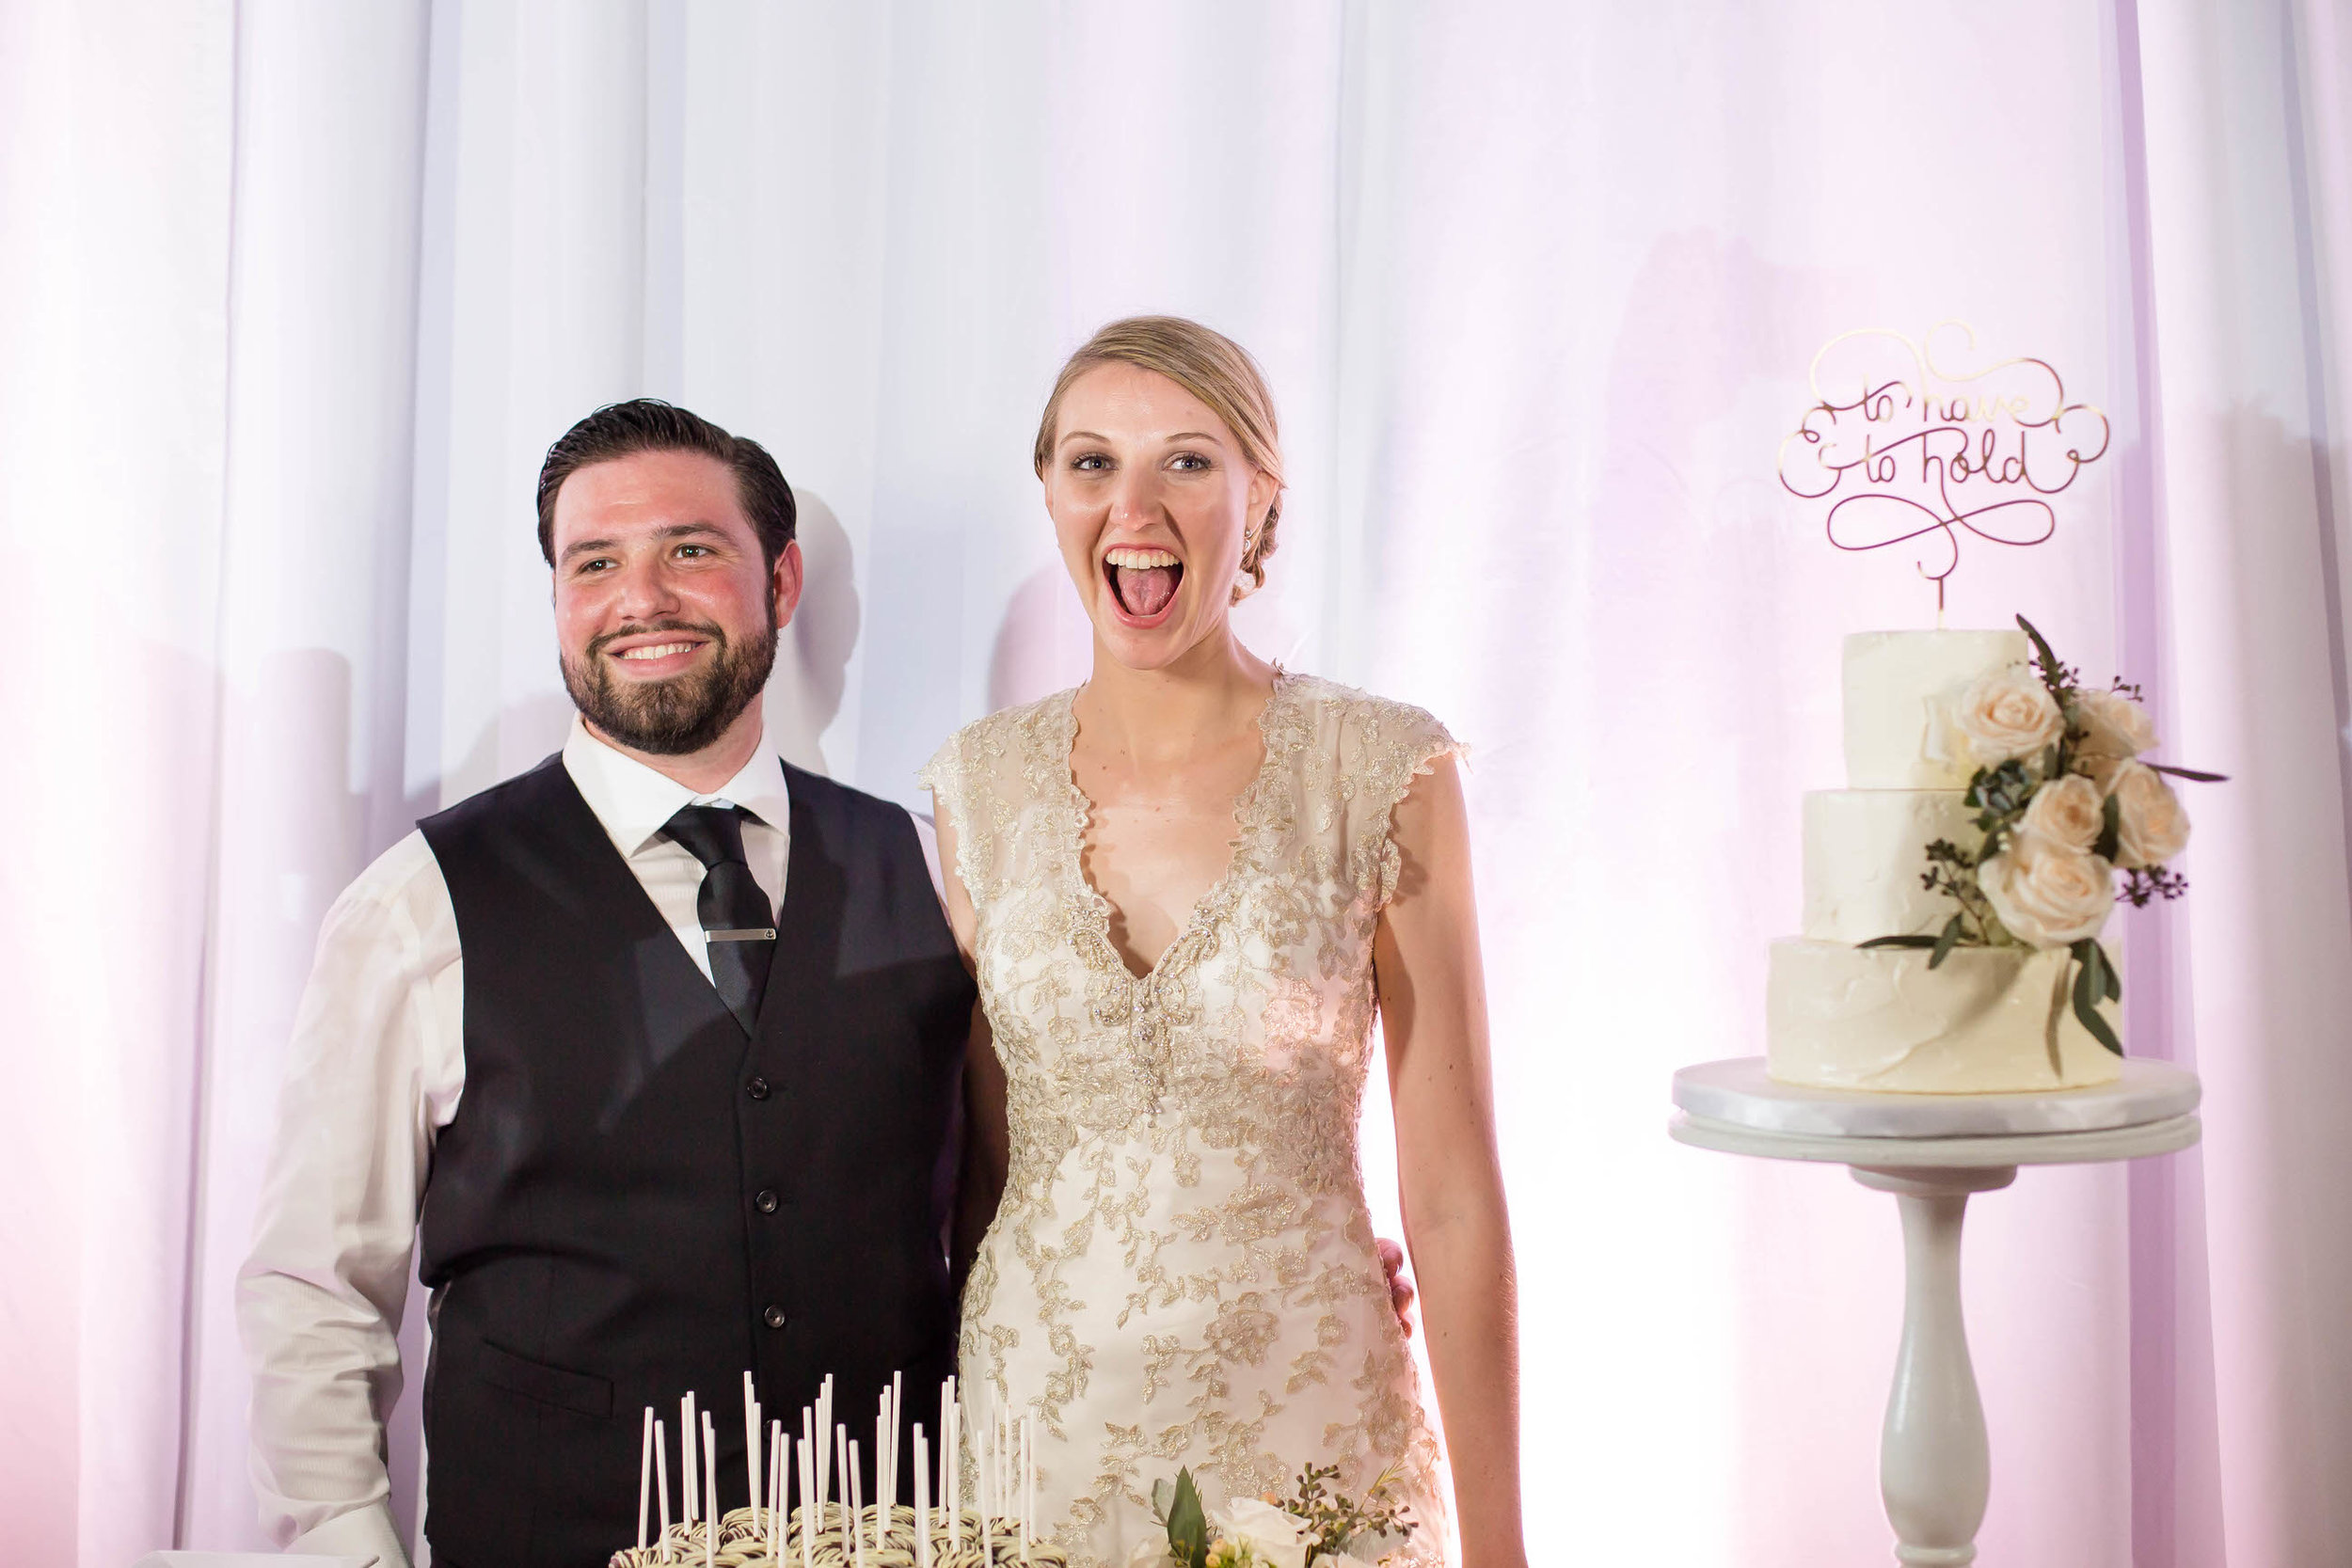 bride_groom_cake_fun_tiny_house_photo.jpg